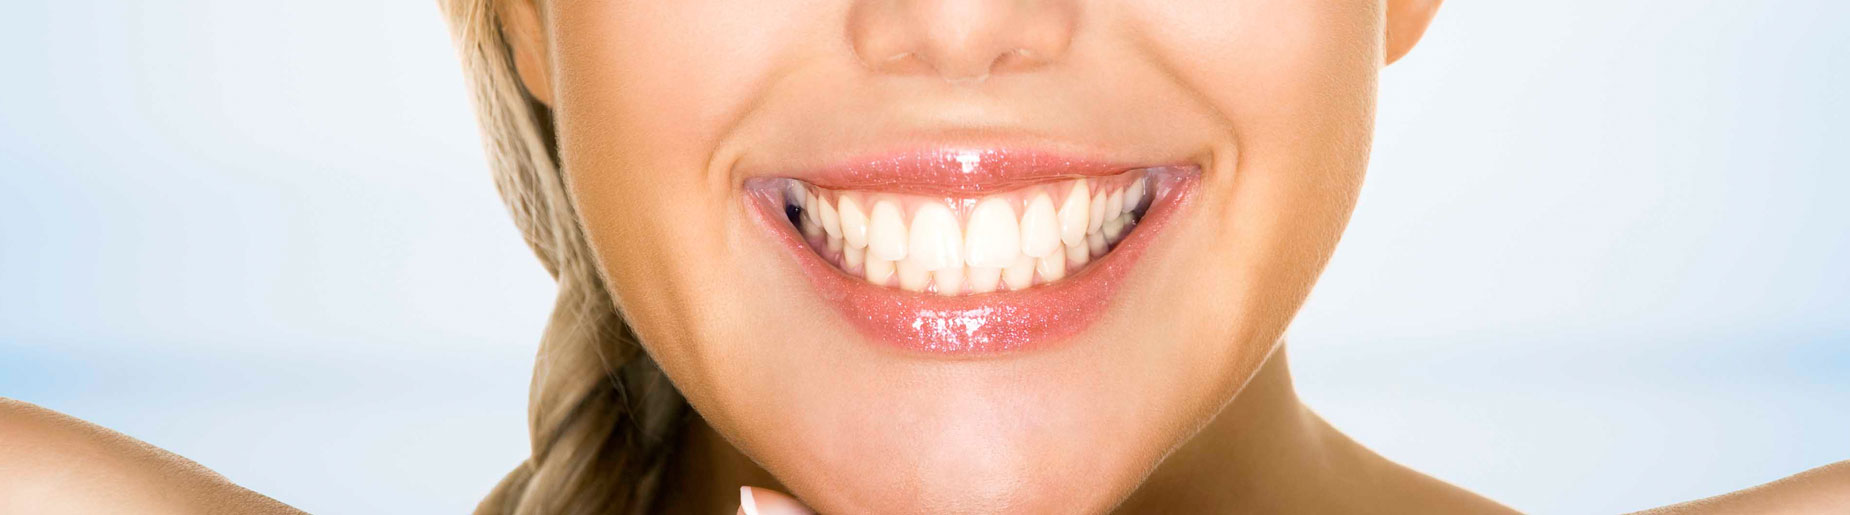 San Diego Smile Dentistry Celebrity Teeth Before And After Jaw Wiring Surgery